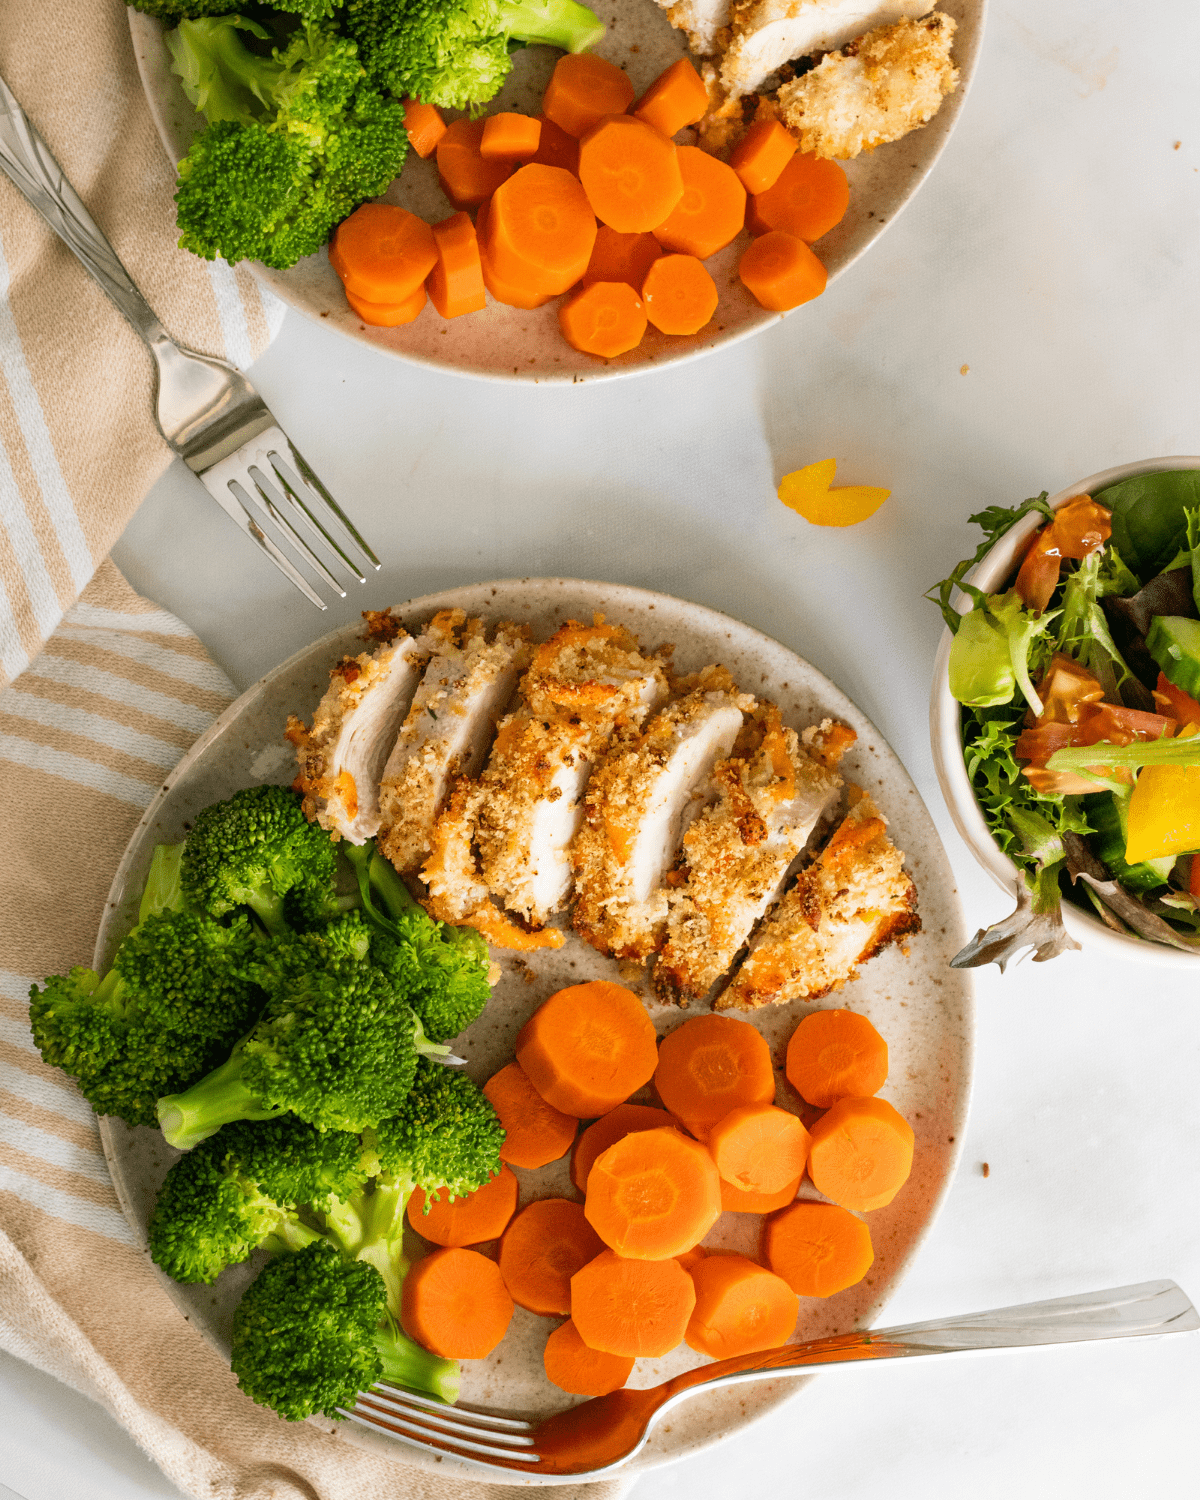 baked ranch chicken on a plate with vegetables and a side salad.